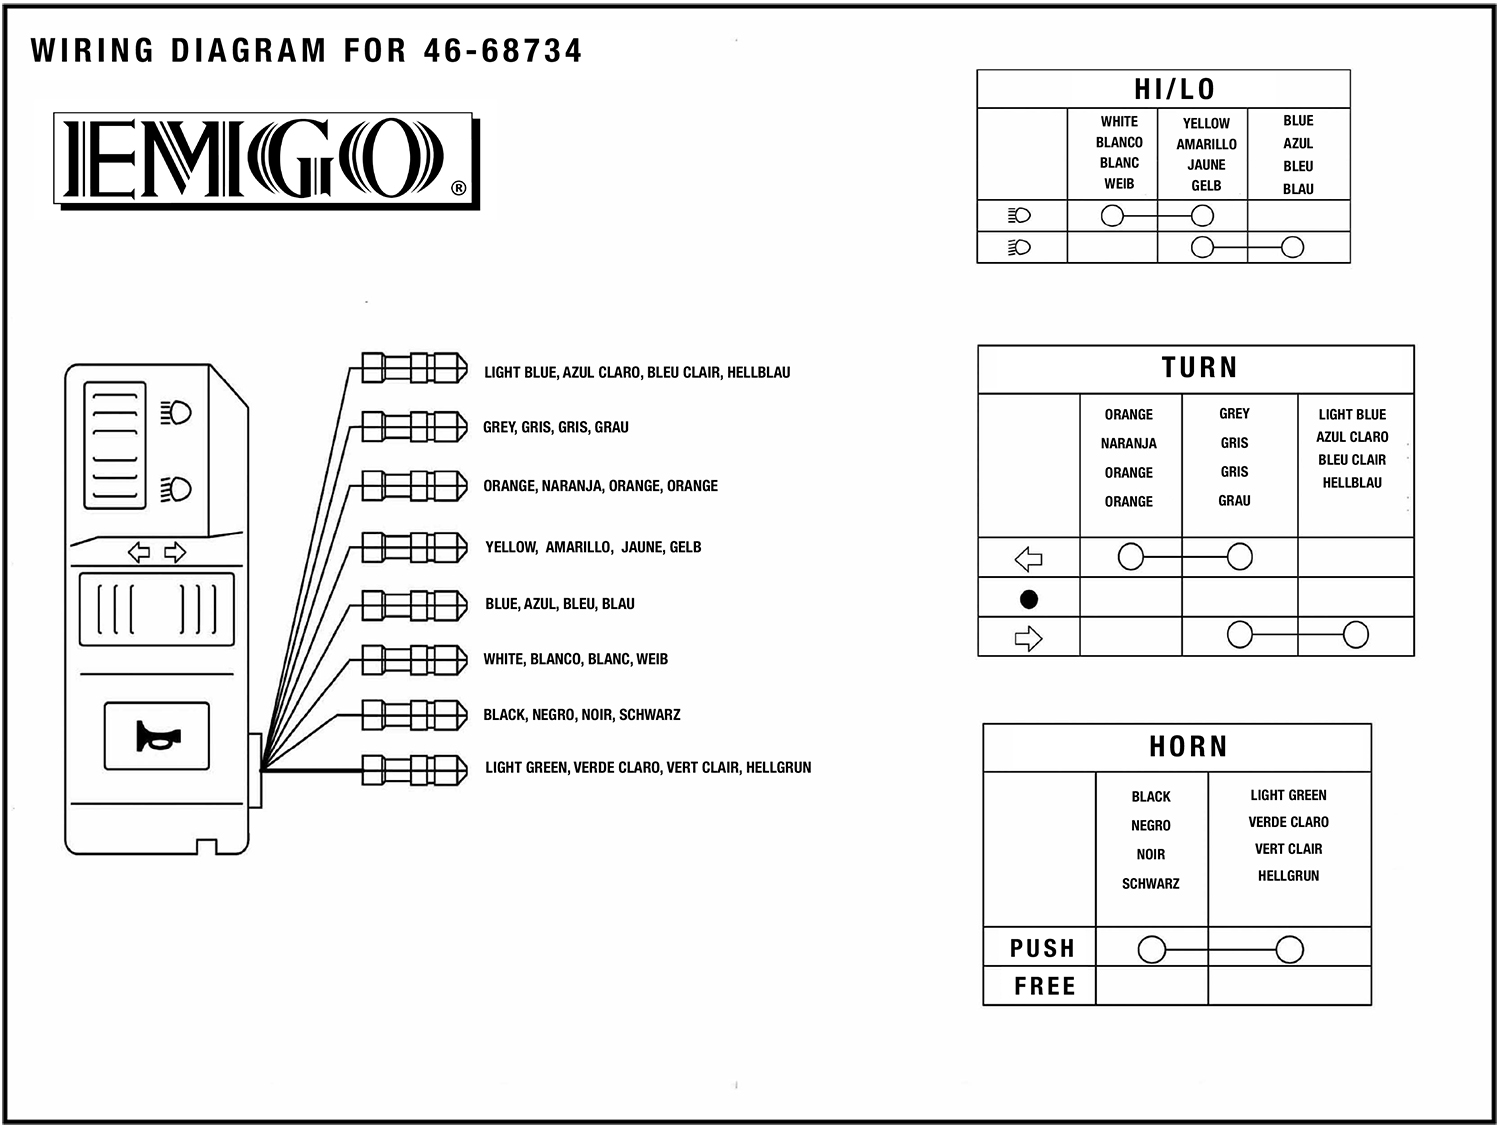 46 68734 wiring diagram left emgo schematic pin out handlebar multi switch motorcycle?t=1490389479 emgo universal handlebar multi switch left 46 68734 wiring Kawasaki ATV Wiring Diagram at eliteediting.co